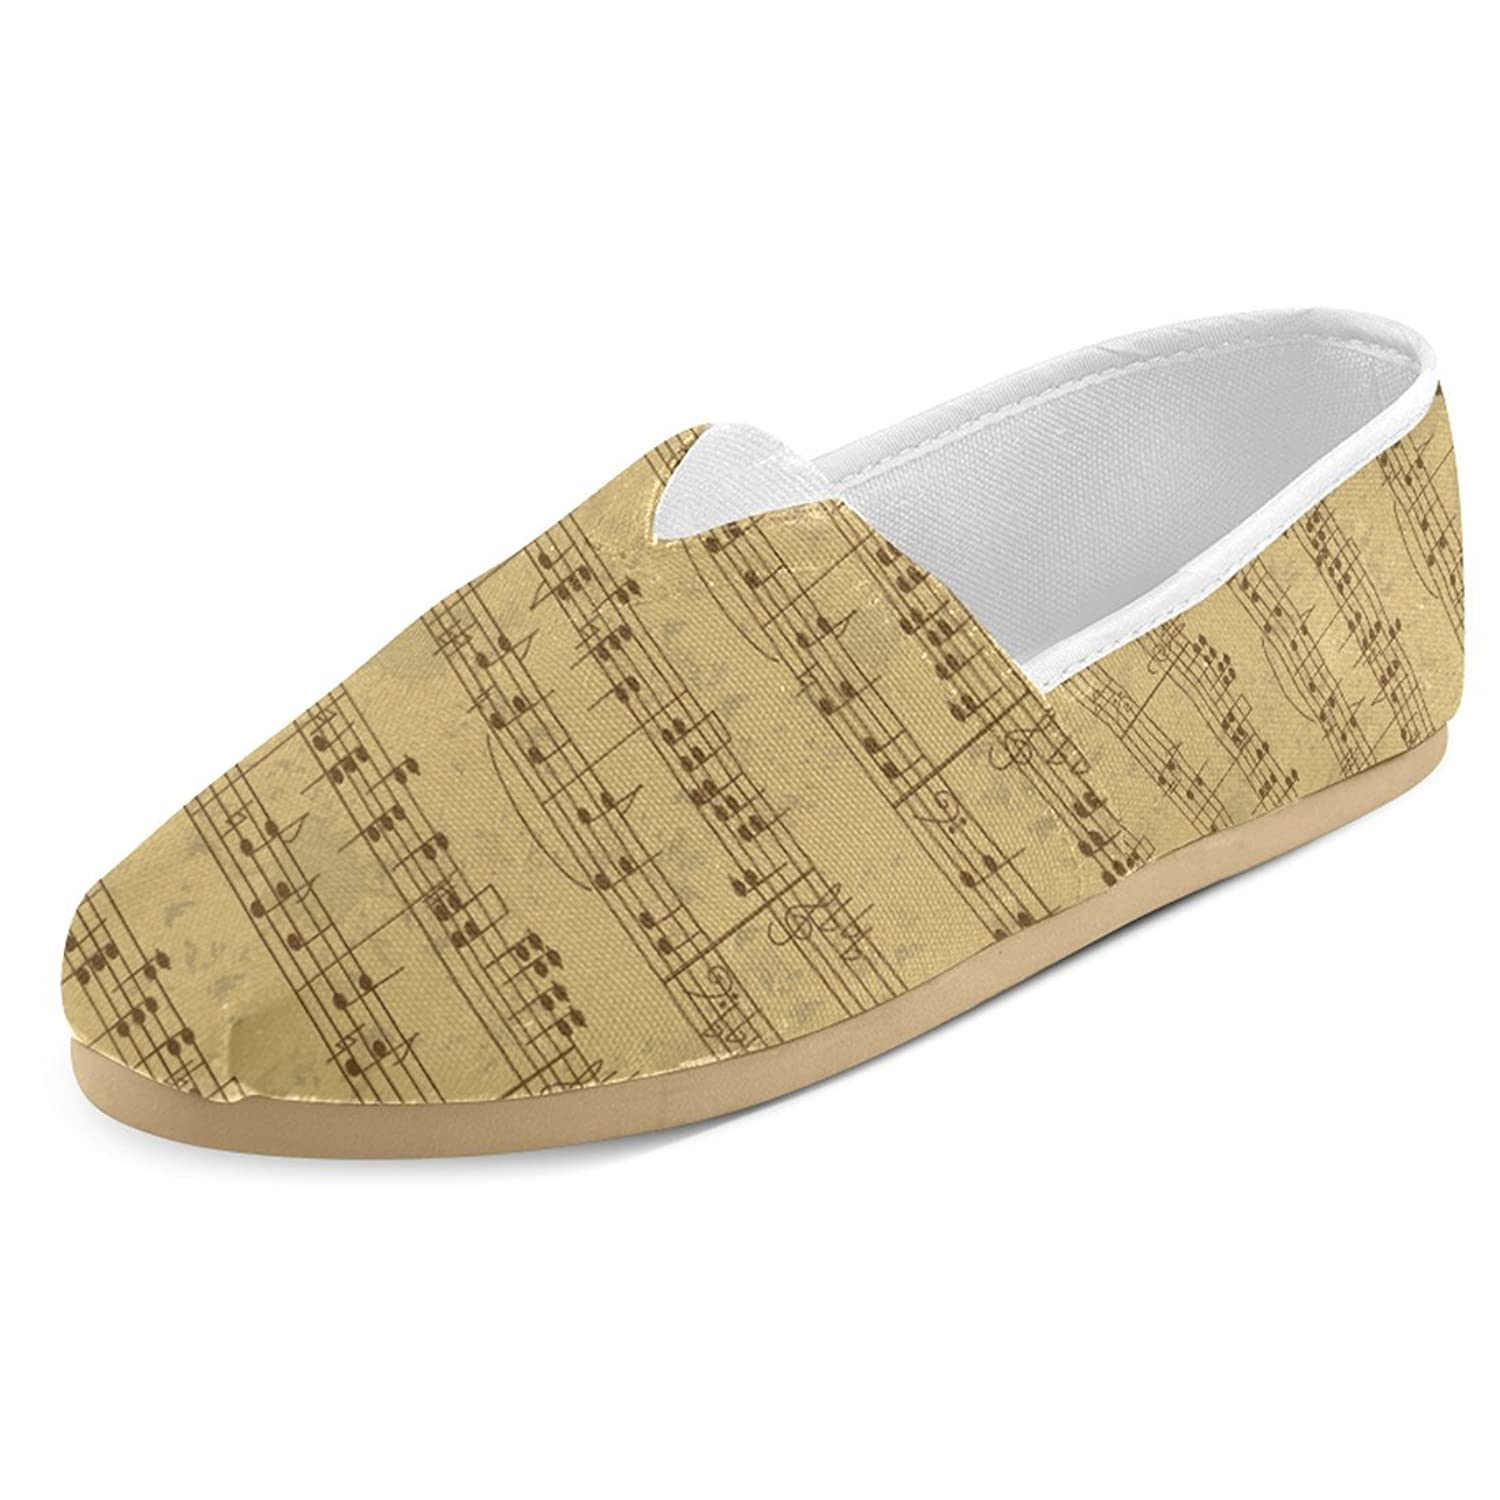 InterestPrint Music Note Casual Women's Canvas Slip-On Shoes Espadrille